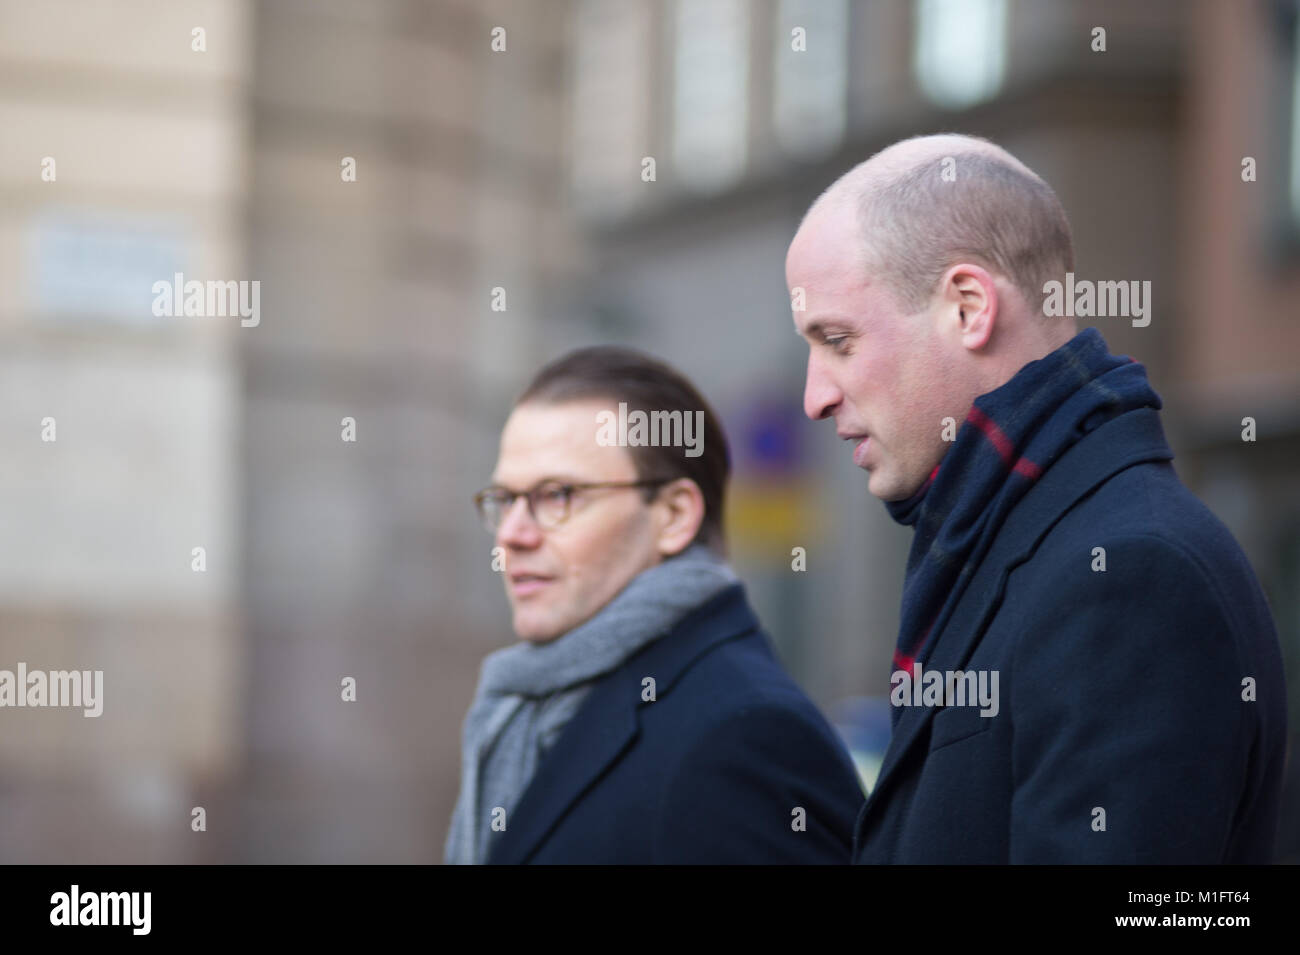 wStockholm, Sweden, 30th January, 2018. The Duke and Duchess of Cambridge's Tour of Sweden 30th-31th January,2018. - Stock Image